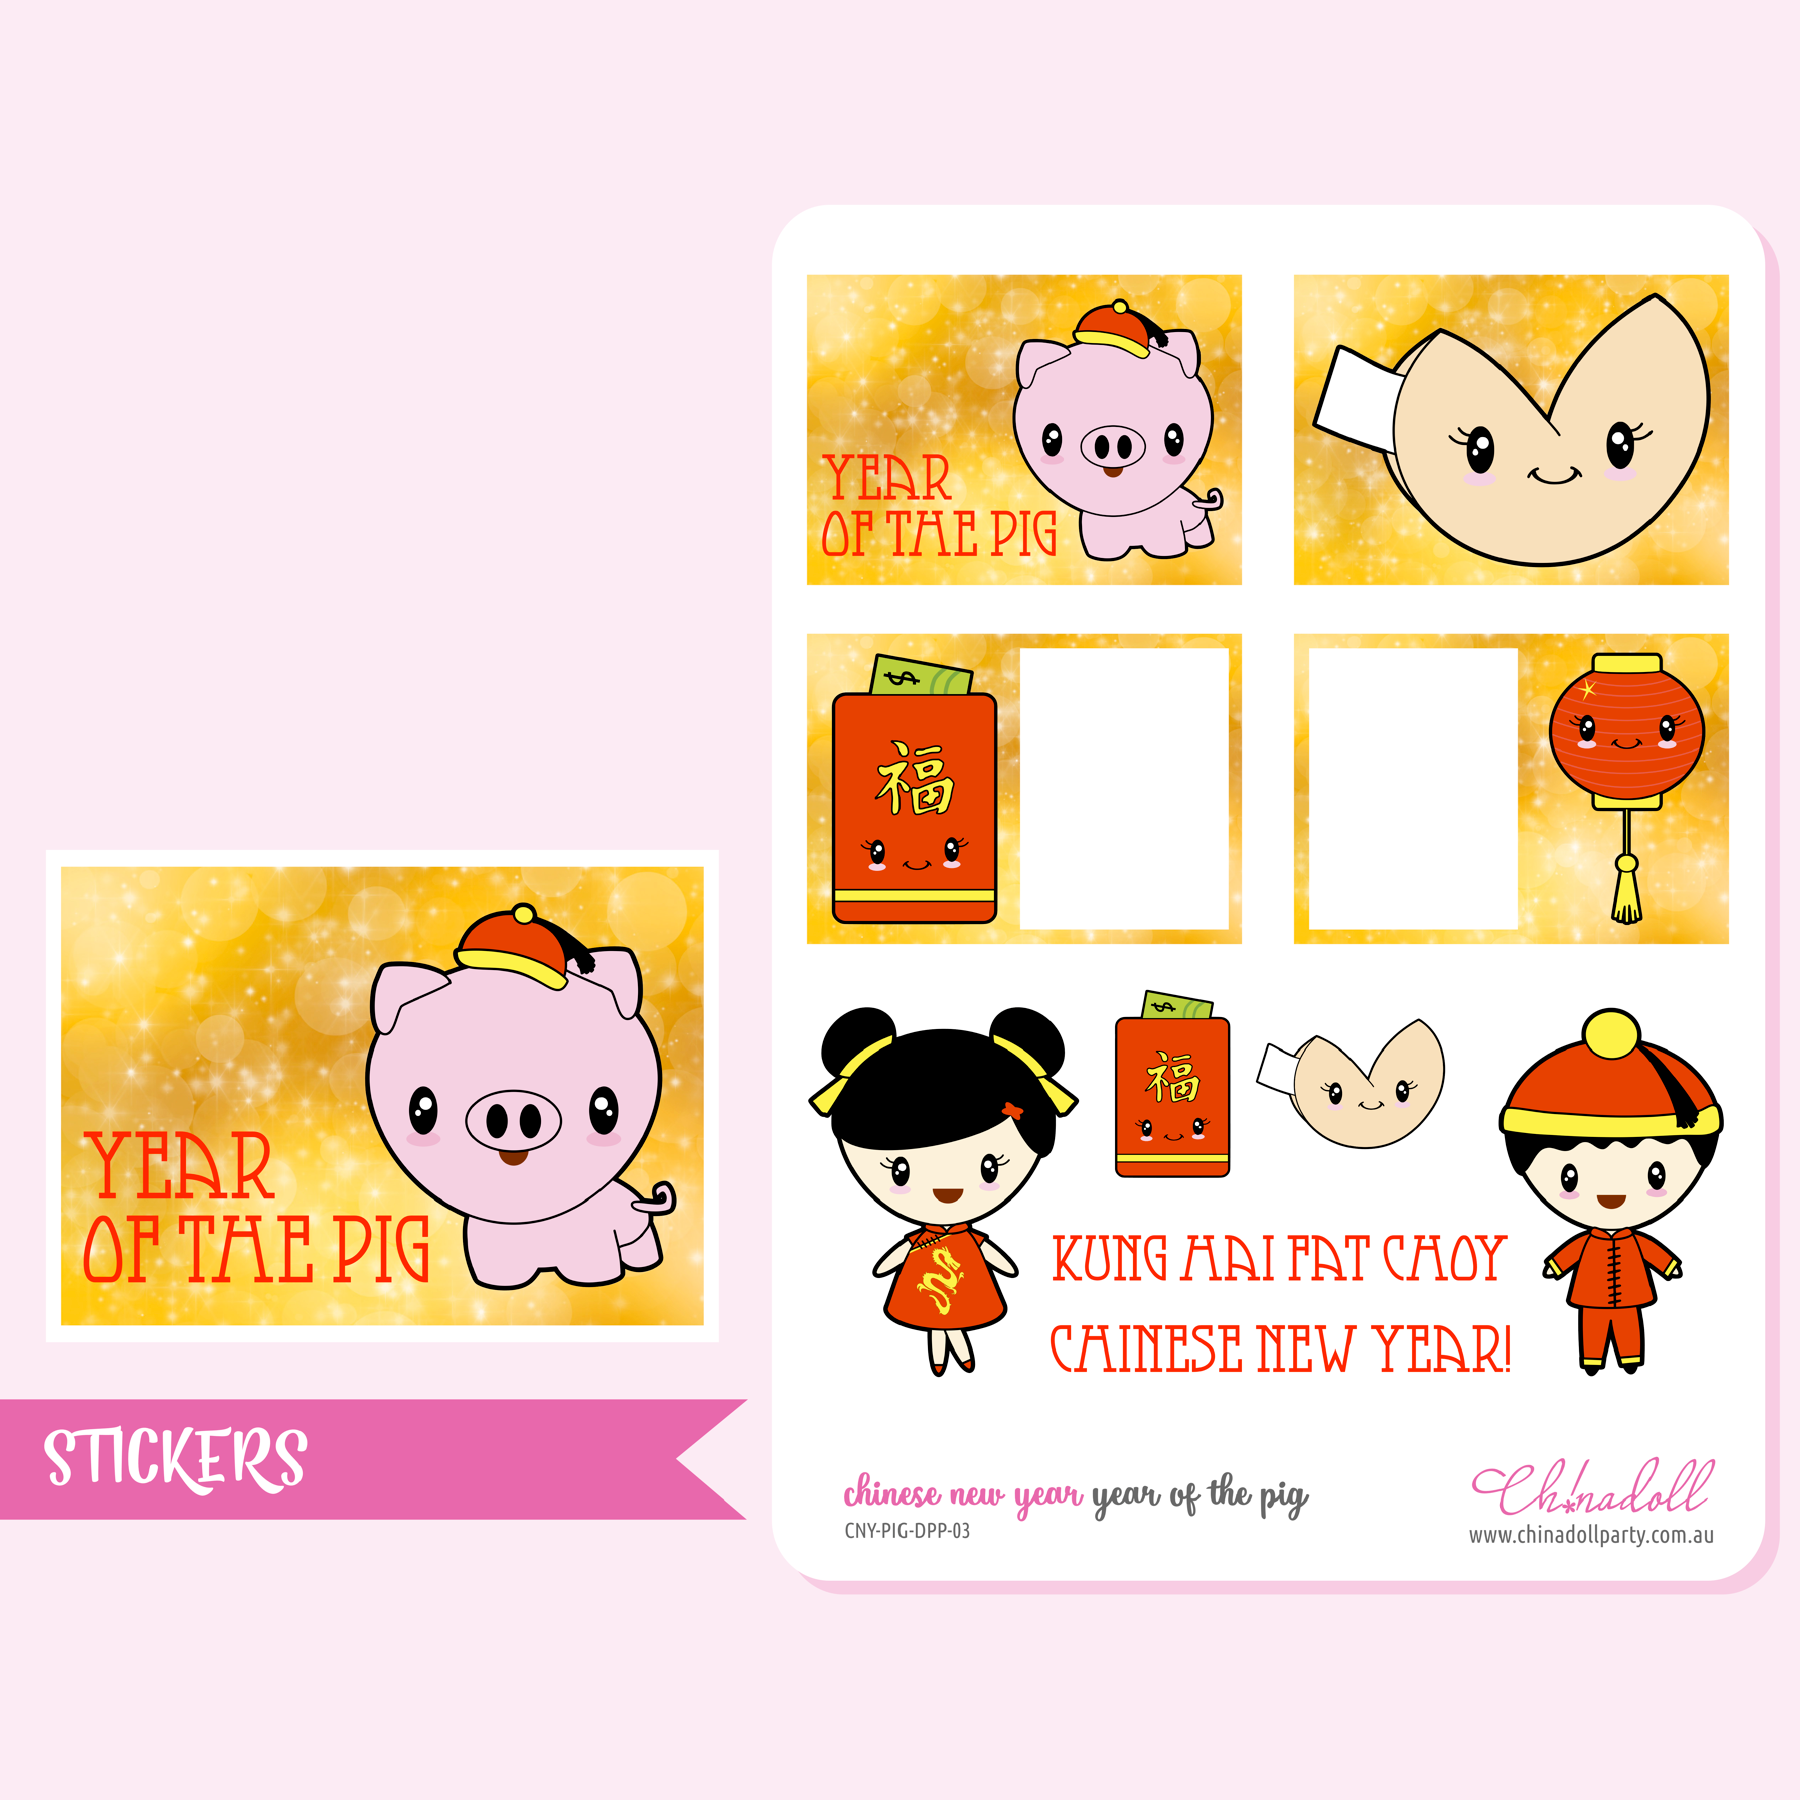 chinese new year - year of the pig | EC daily petiteplanner calendar covers | CNY-PIG-DPP-03